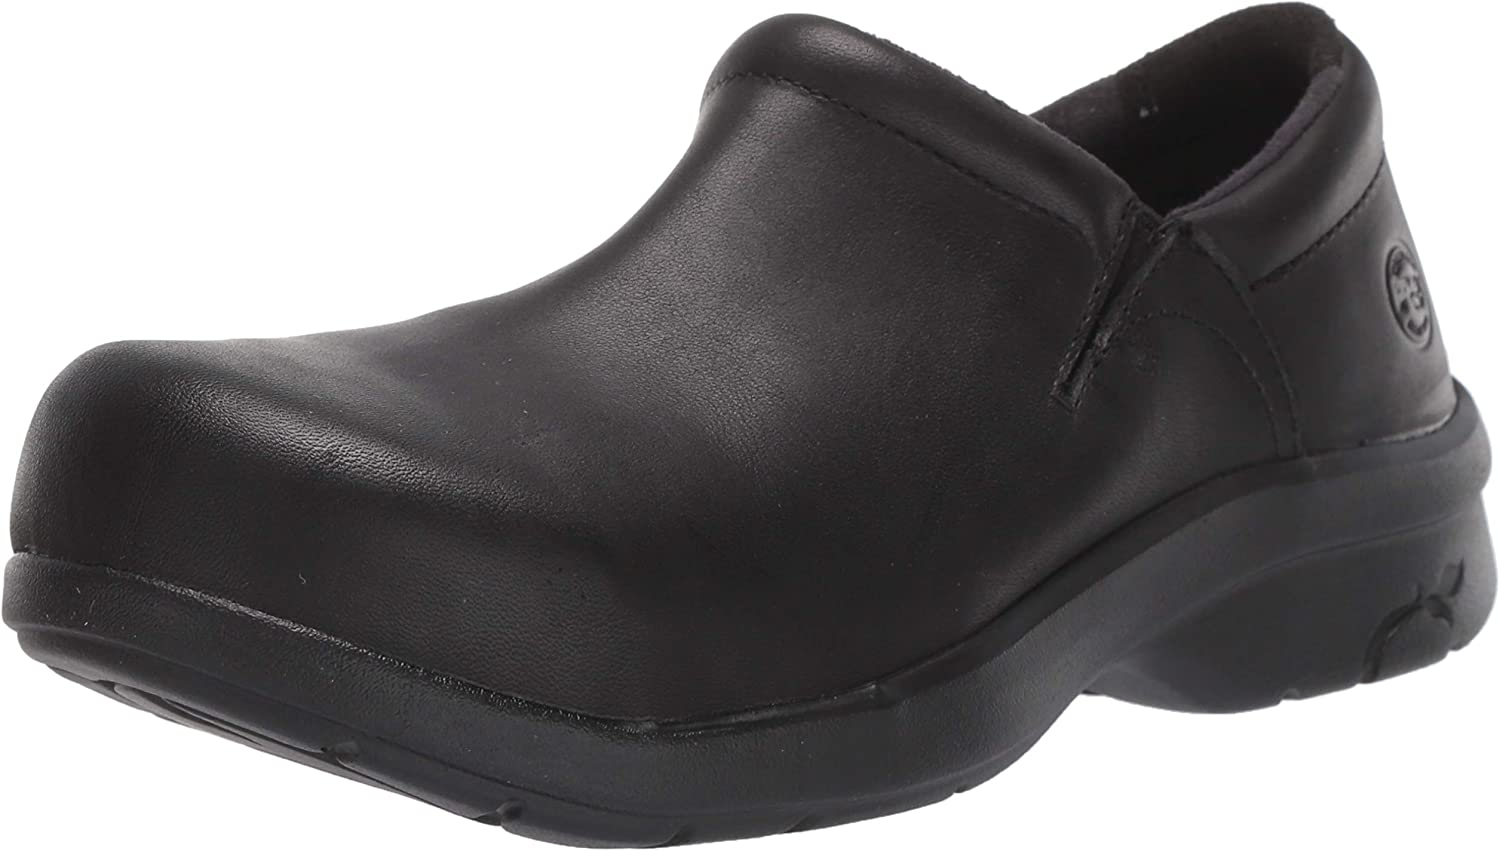 Timberland PRO Women's Newbury Slip on Alloy Safety Toe Eh Industrial Boot : Clothing, Shoes & Jewelry